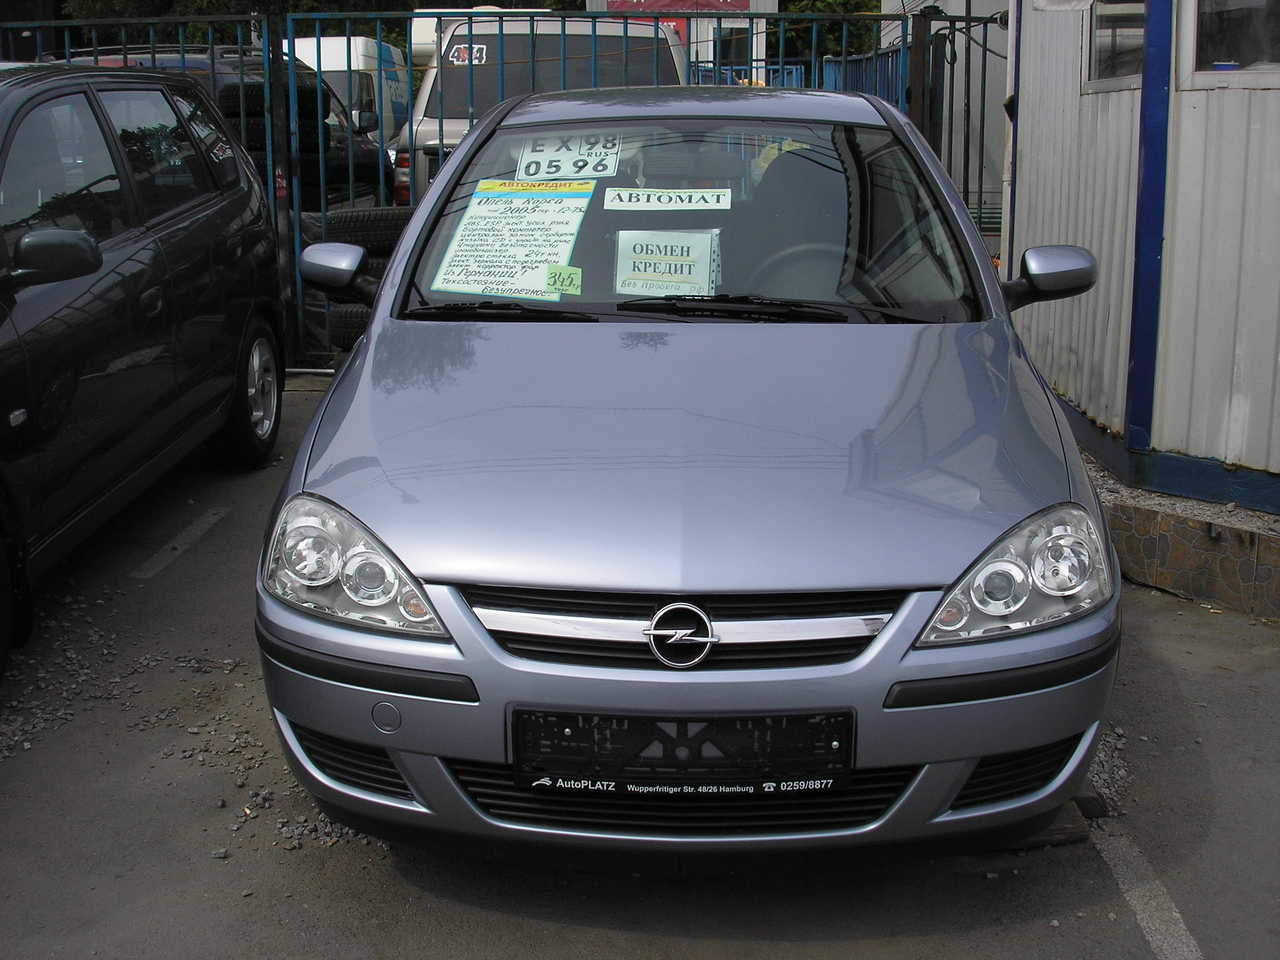 used 2005 opel corsa photos 1200cc ff for sale. Black Bedroom Furniture Sets. Home Design Ideas